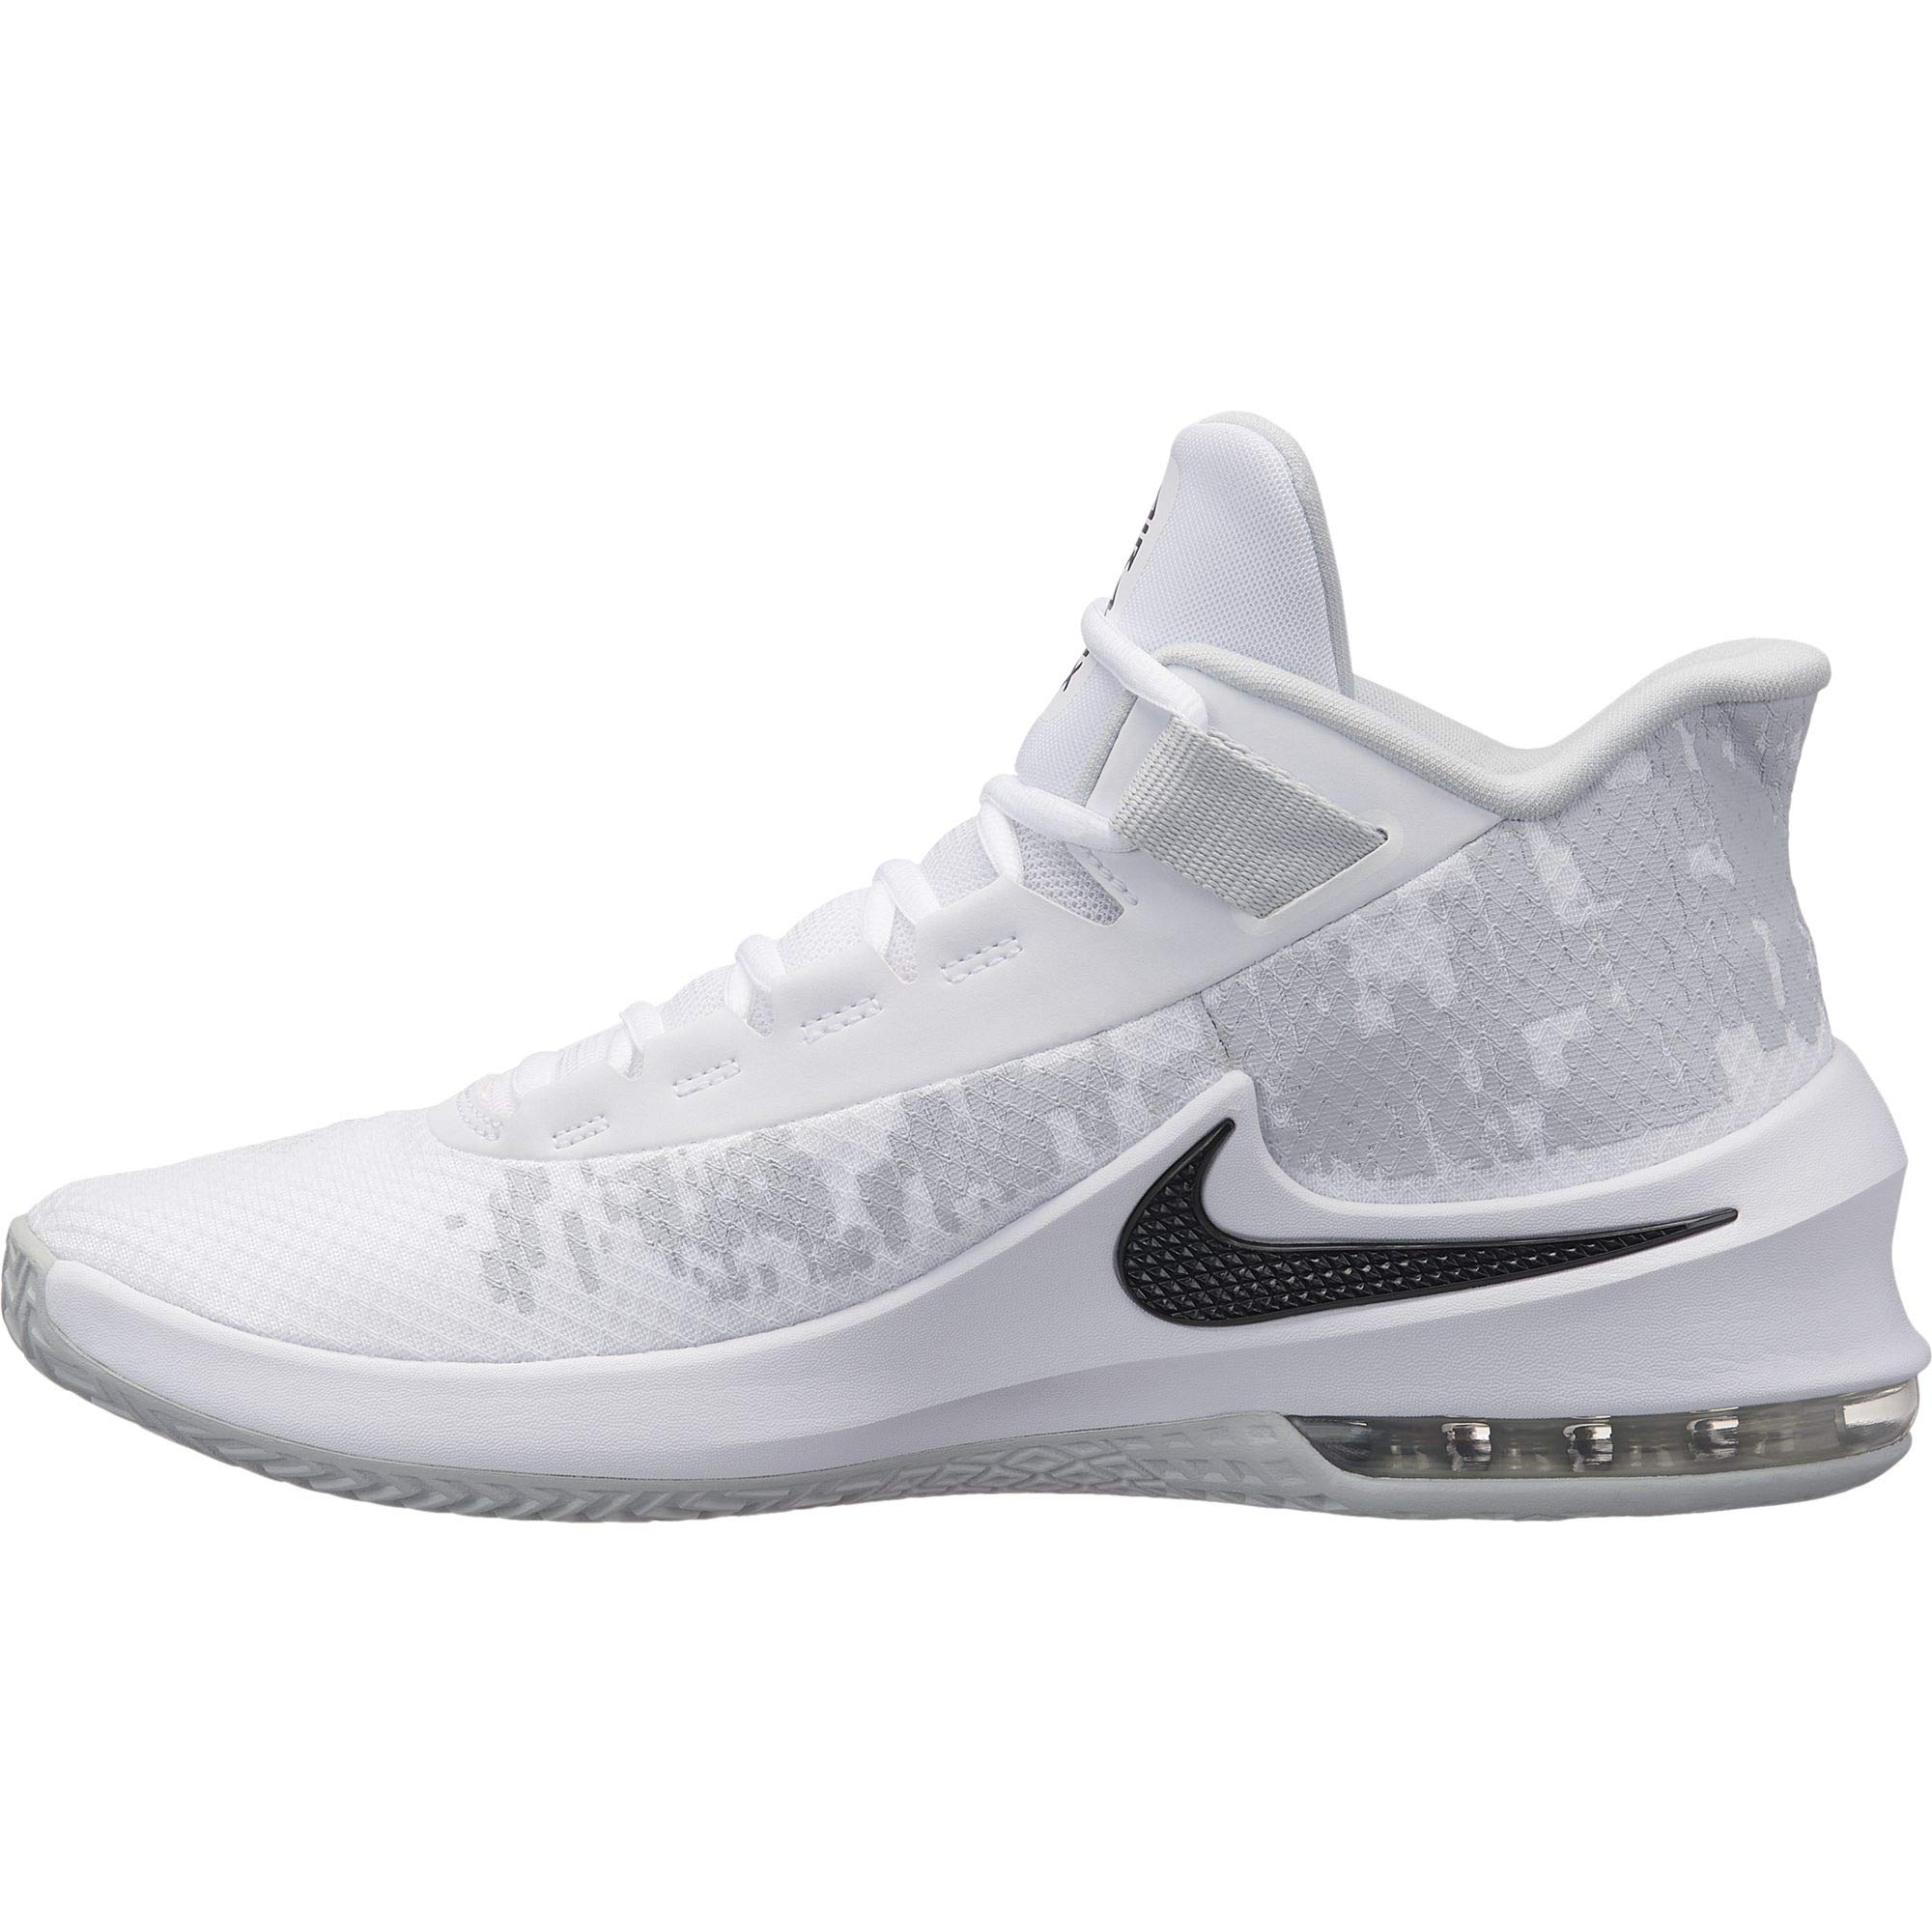 new arrival 9972a bce6a Galleon - Nike Men s Air Max Infuriate 2 Mid Basketball Shoe White Black Pure  Platinum Size 10.5 M US